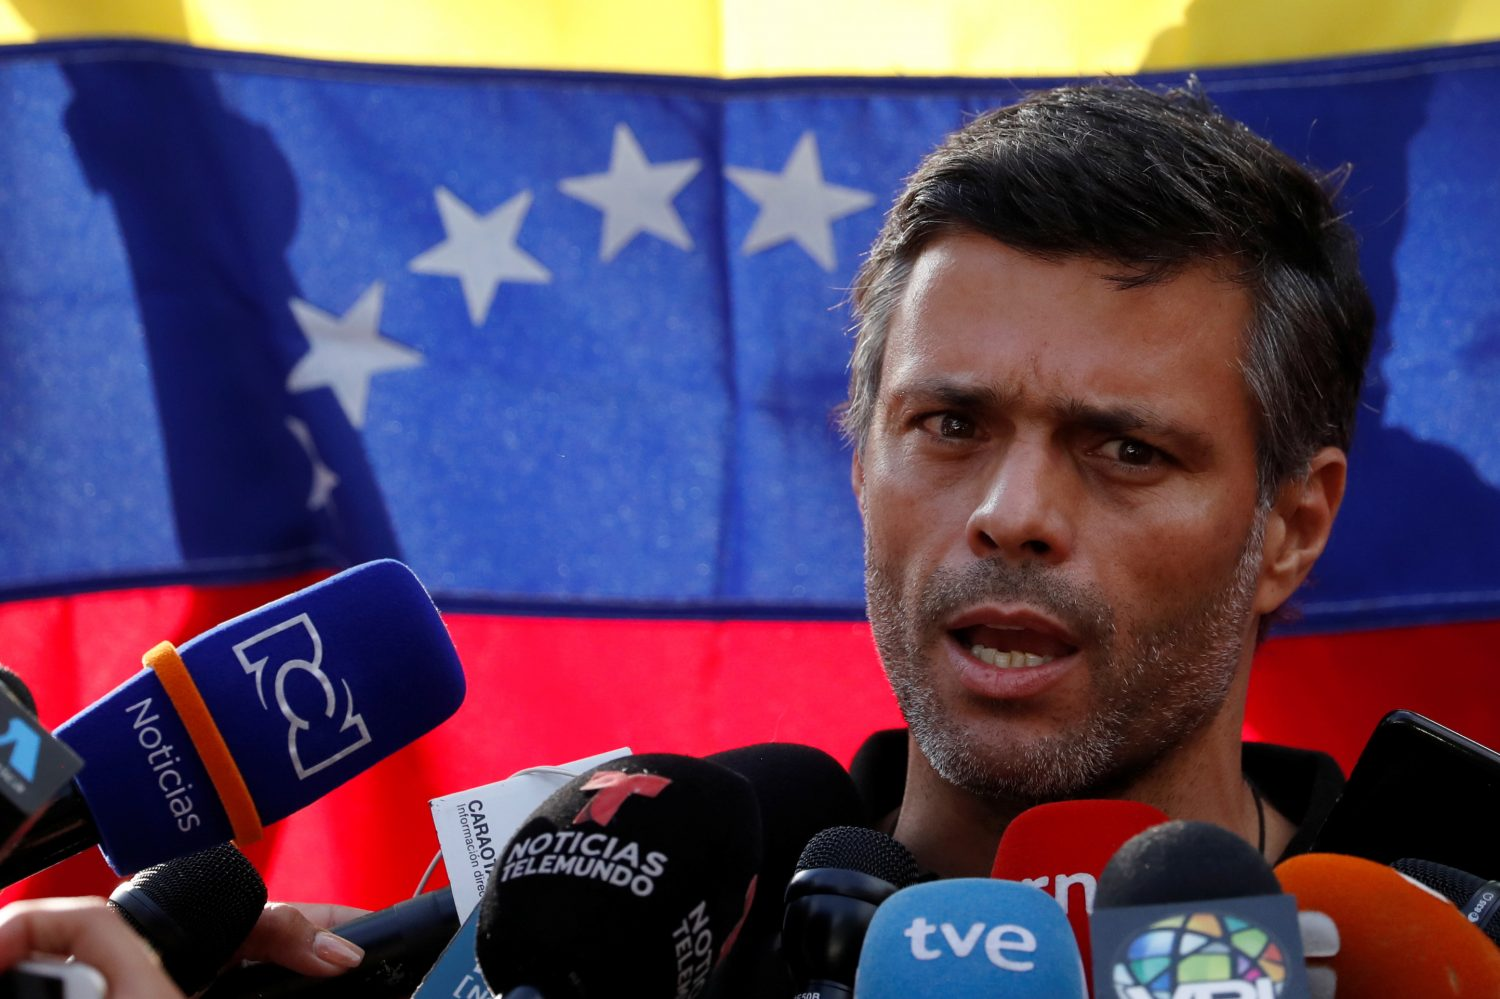 Venezuelan opposition leader Leopoldo Lopez talks to the media at the residence of the Spanish ambassador in Caracas, Venezuela May 2, 2019. REUTERS/Carlos Garcia Rawlins